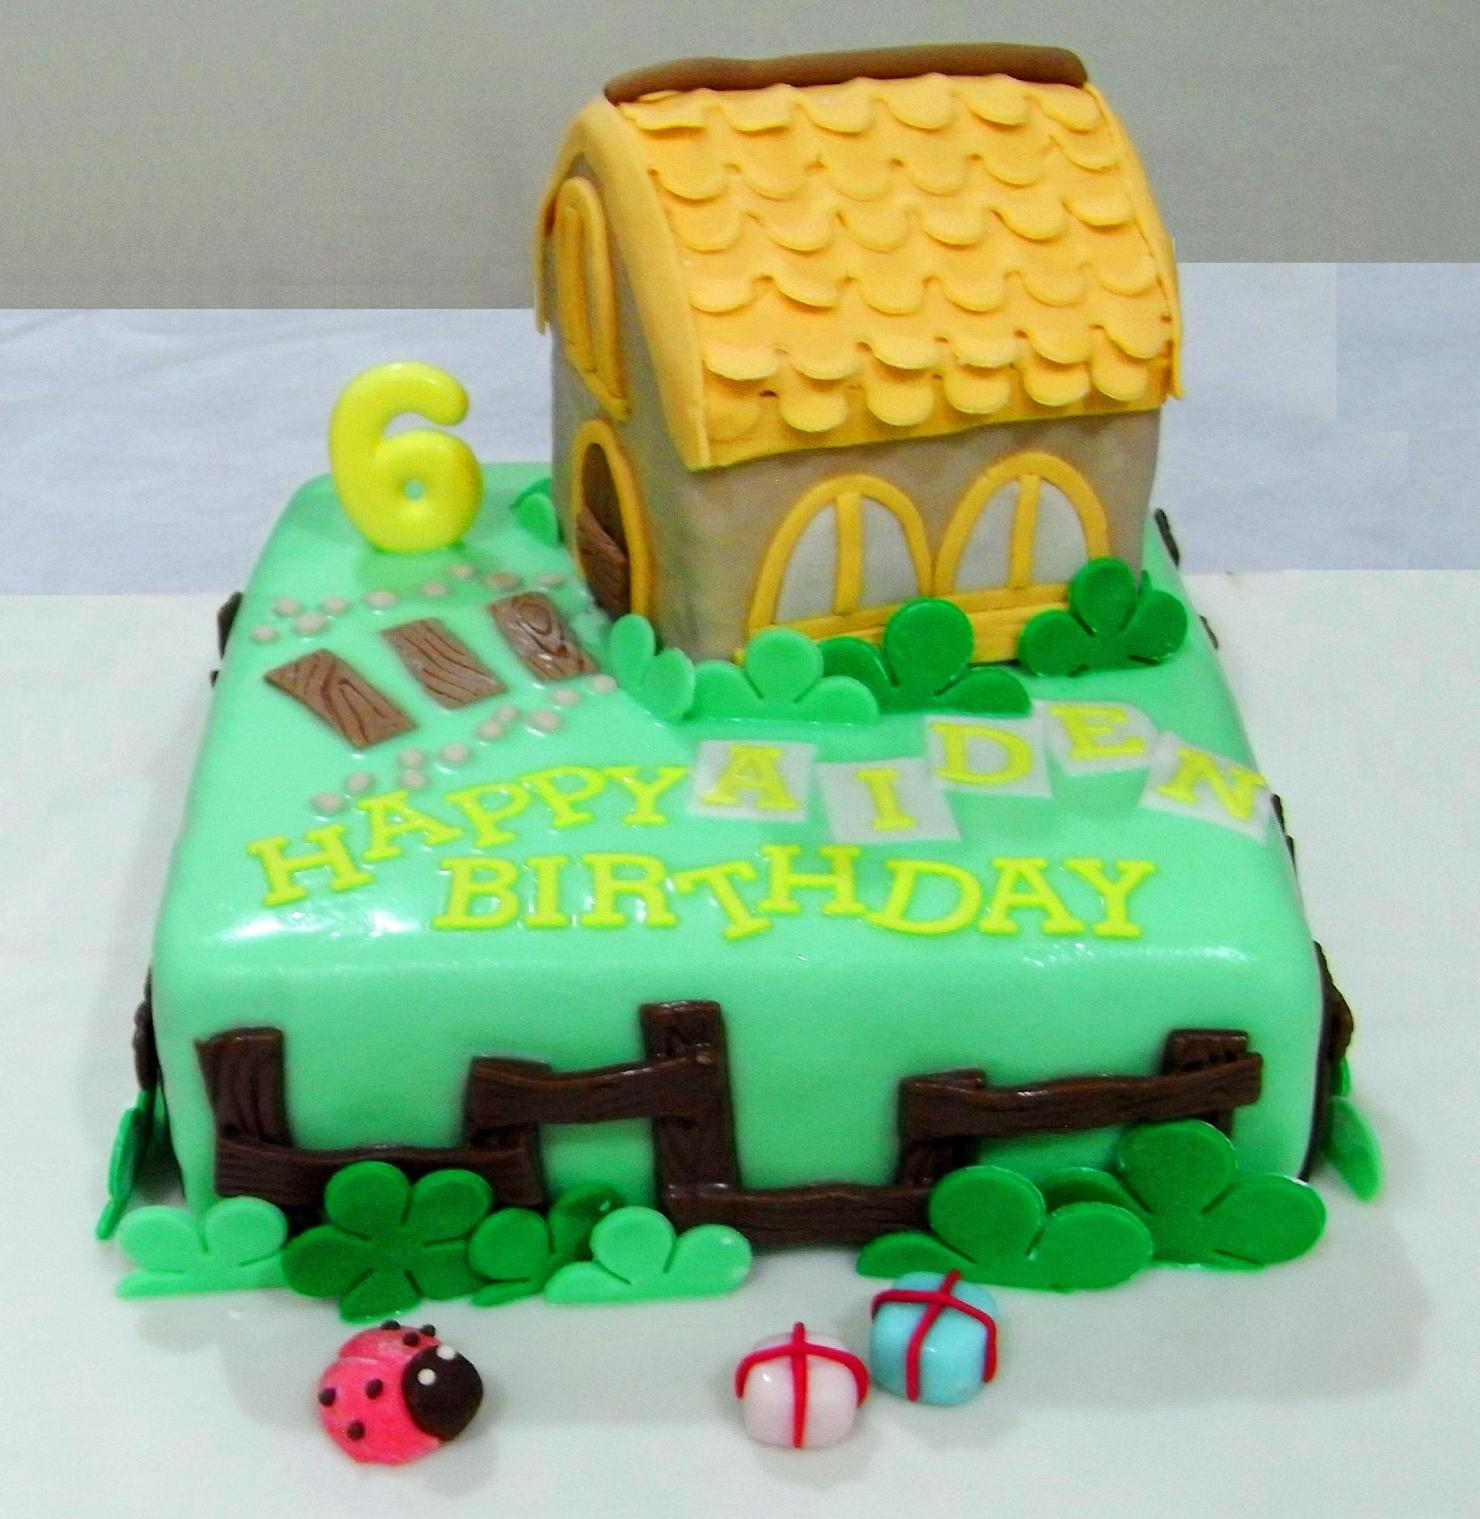 Bearylicious Cakes: Home Sweet Home birthday cake